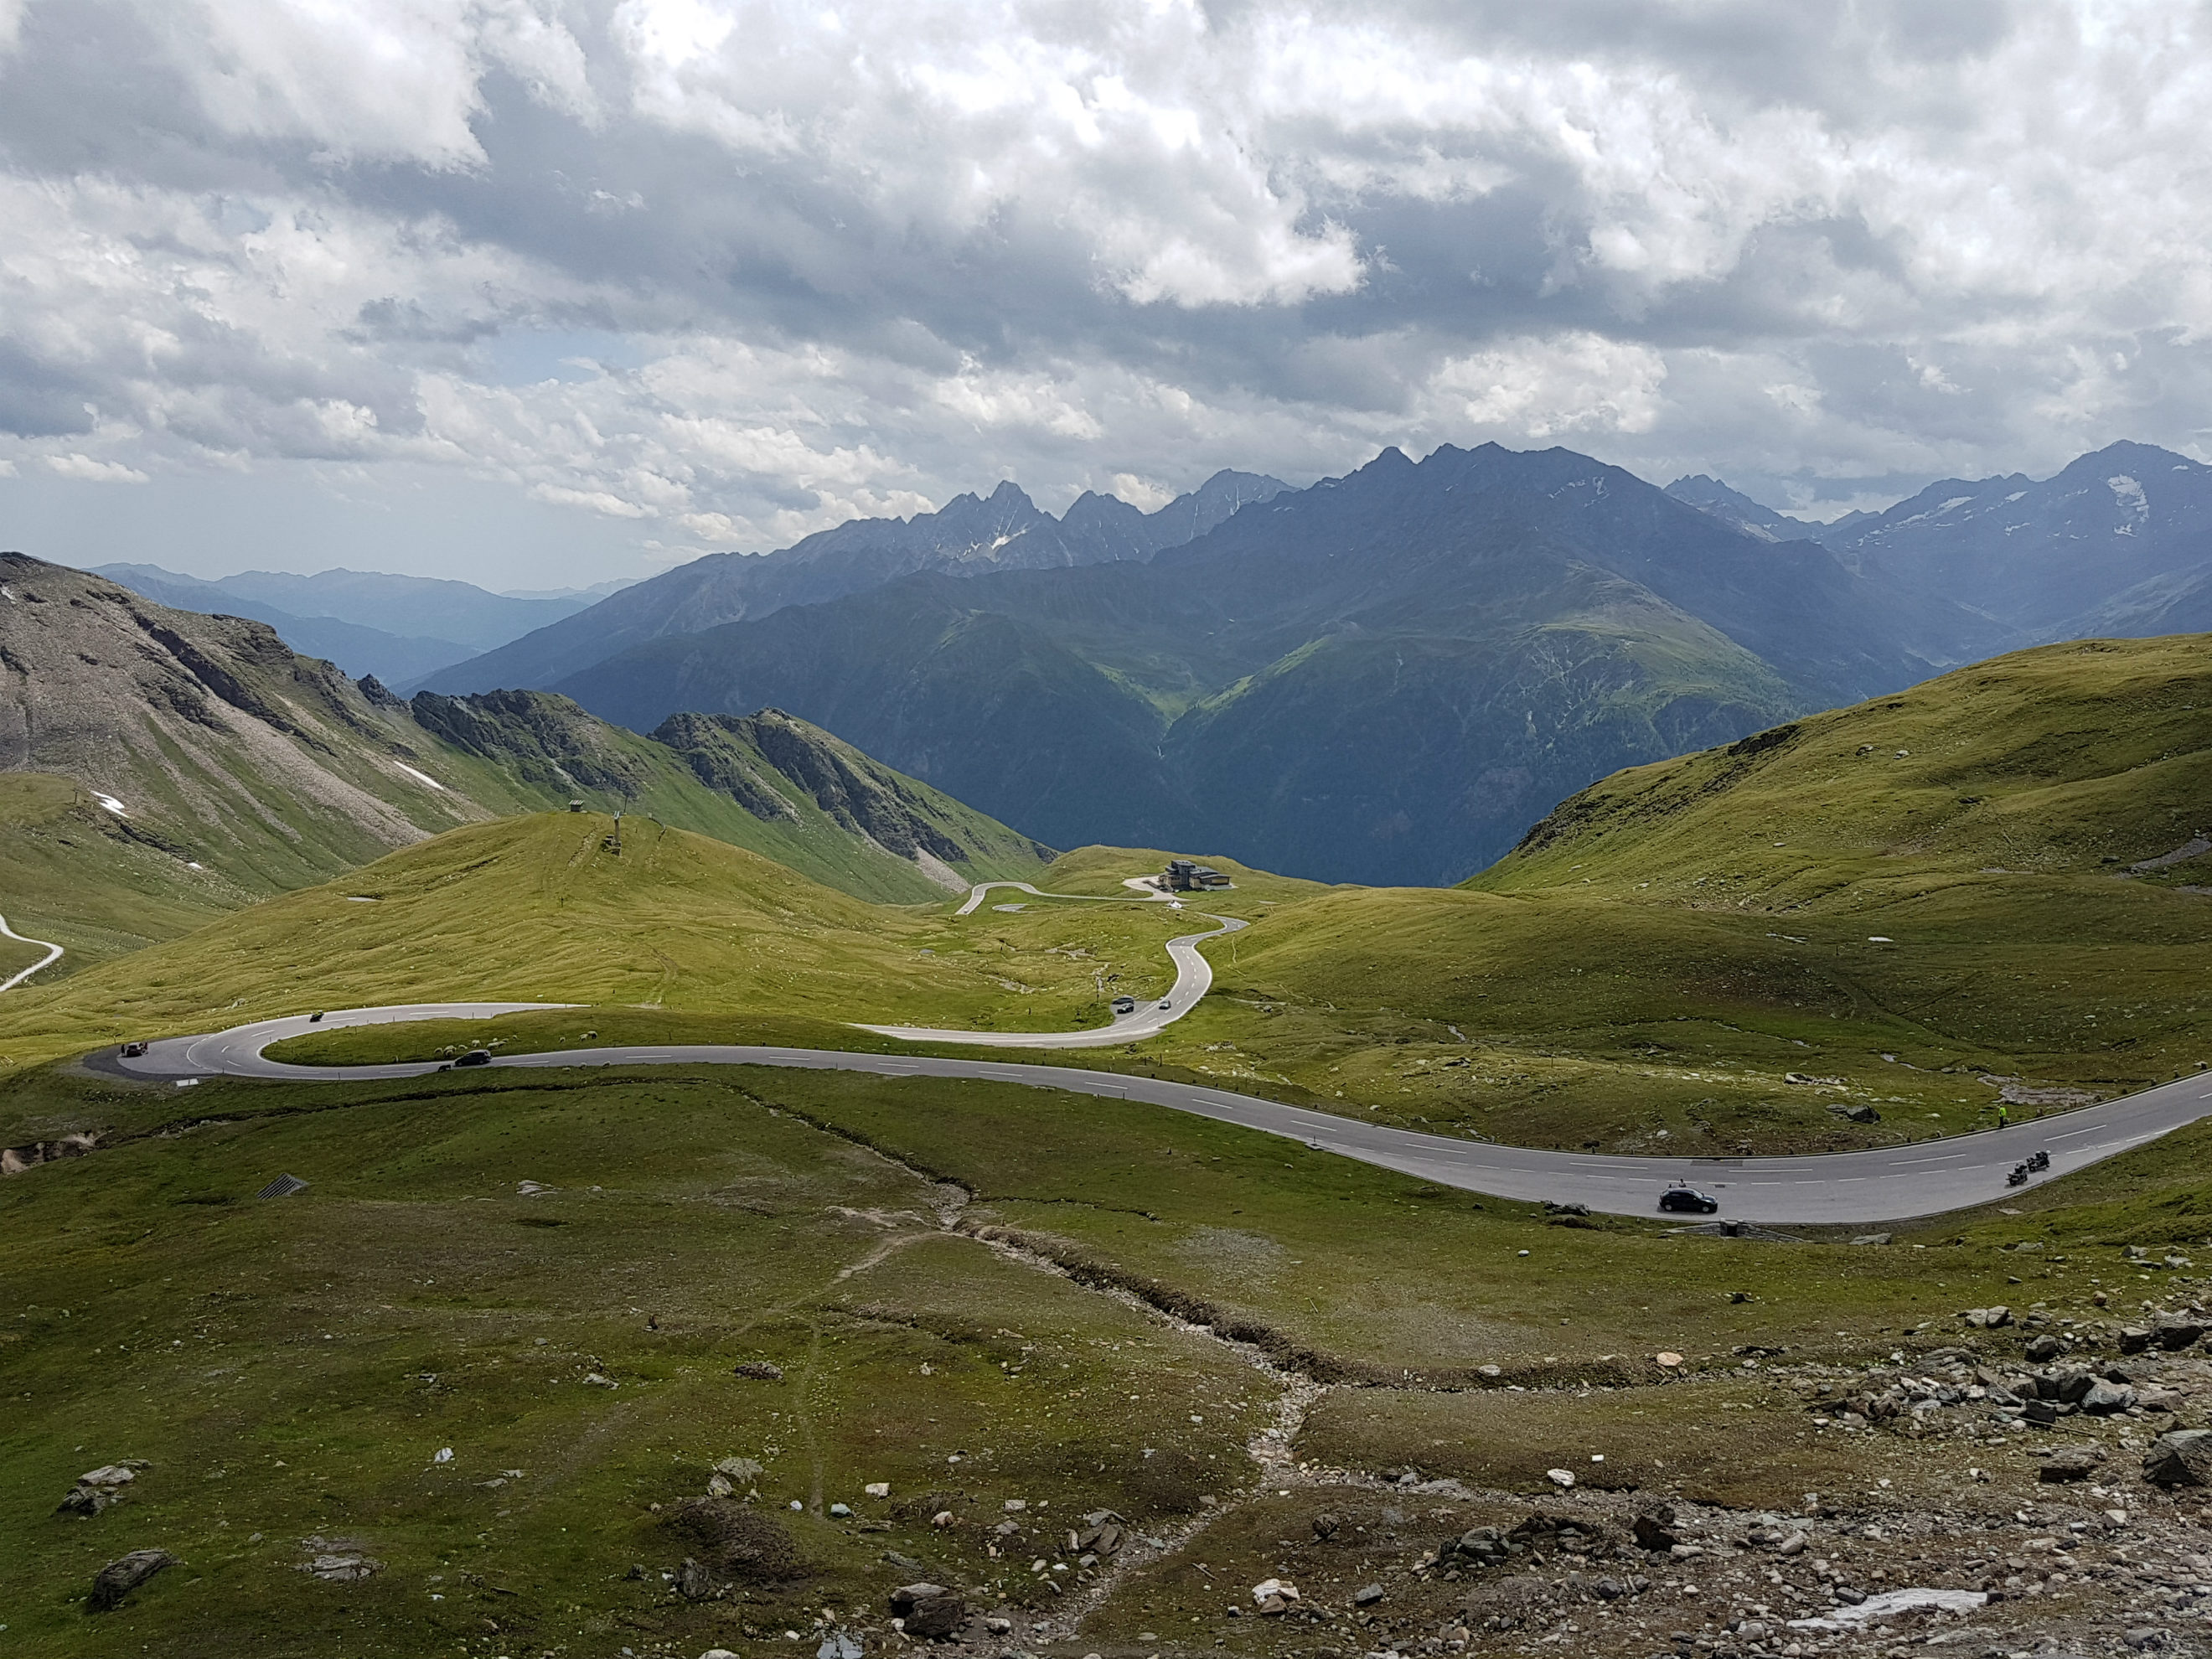 taury-horsky-prechod-grossglockner-alpy